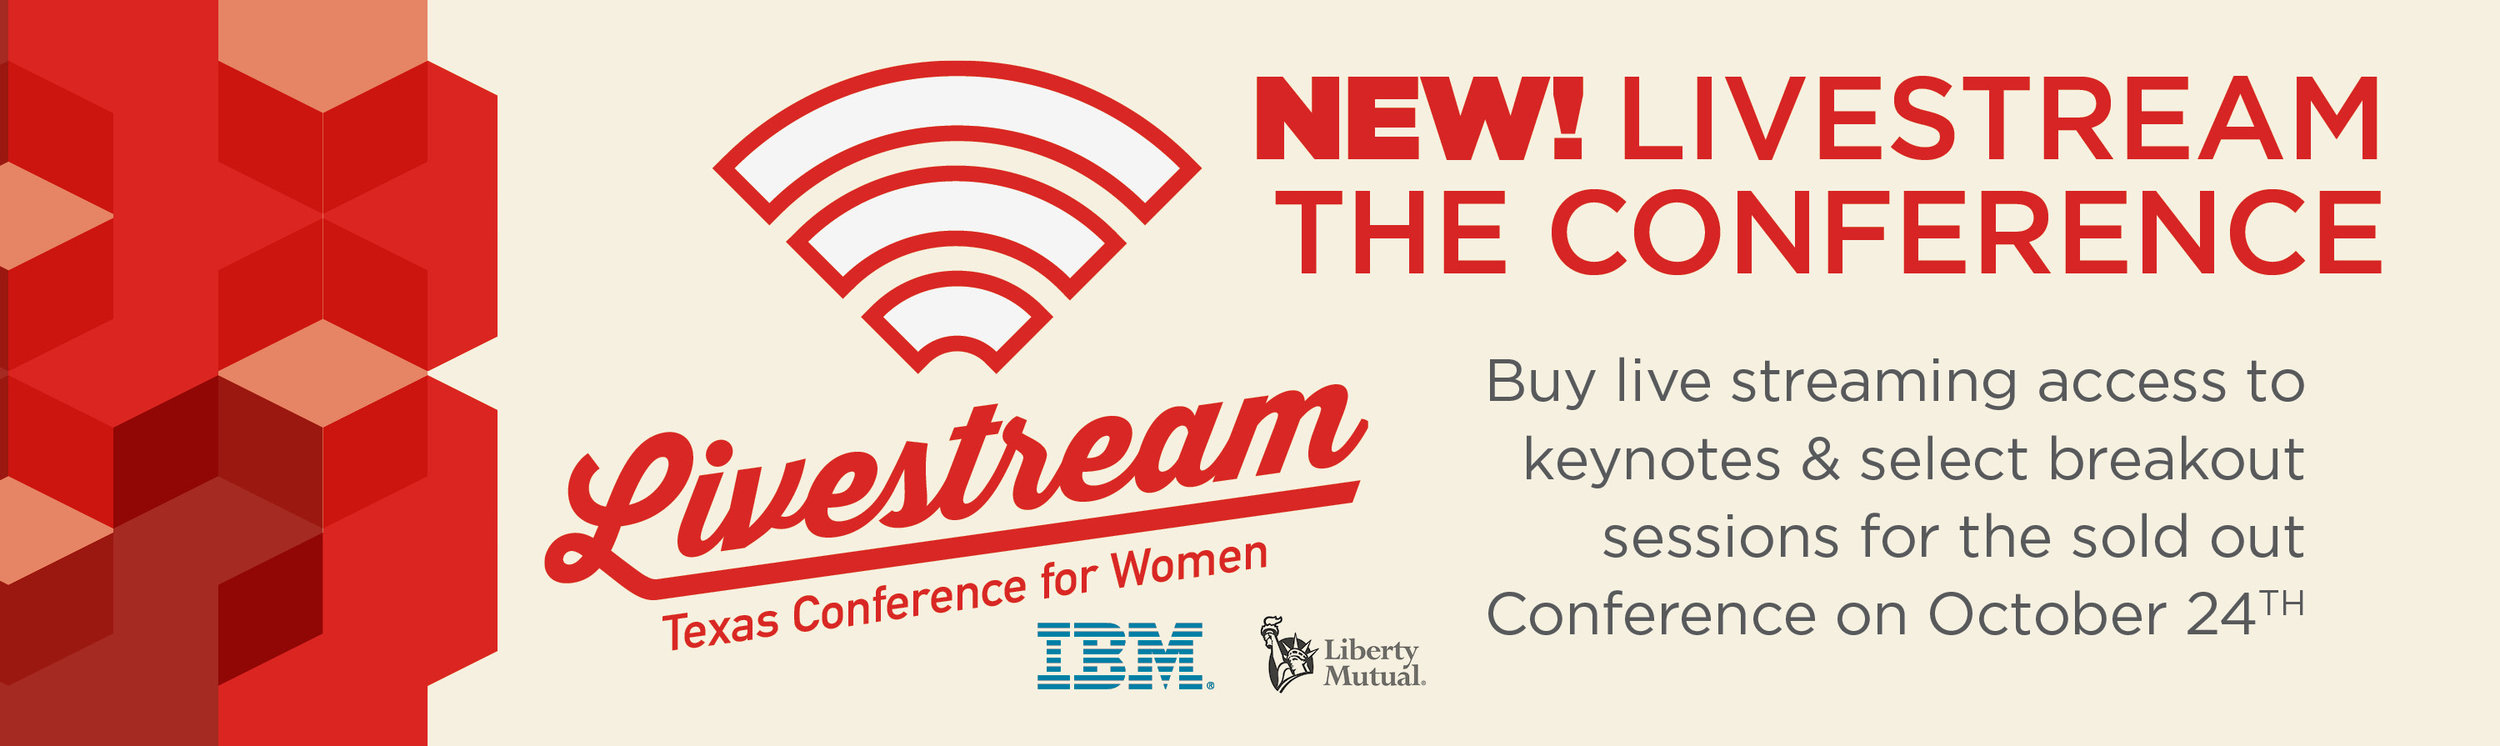 Texas Conference for Women Livestream